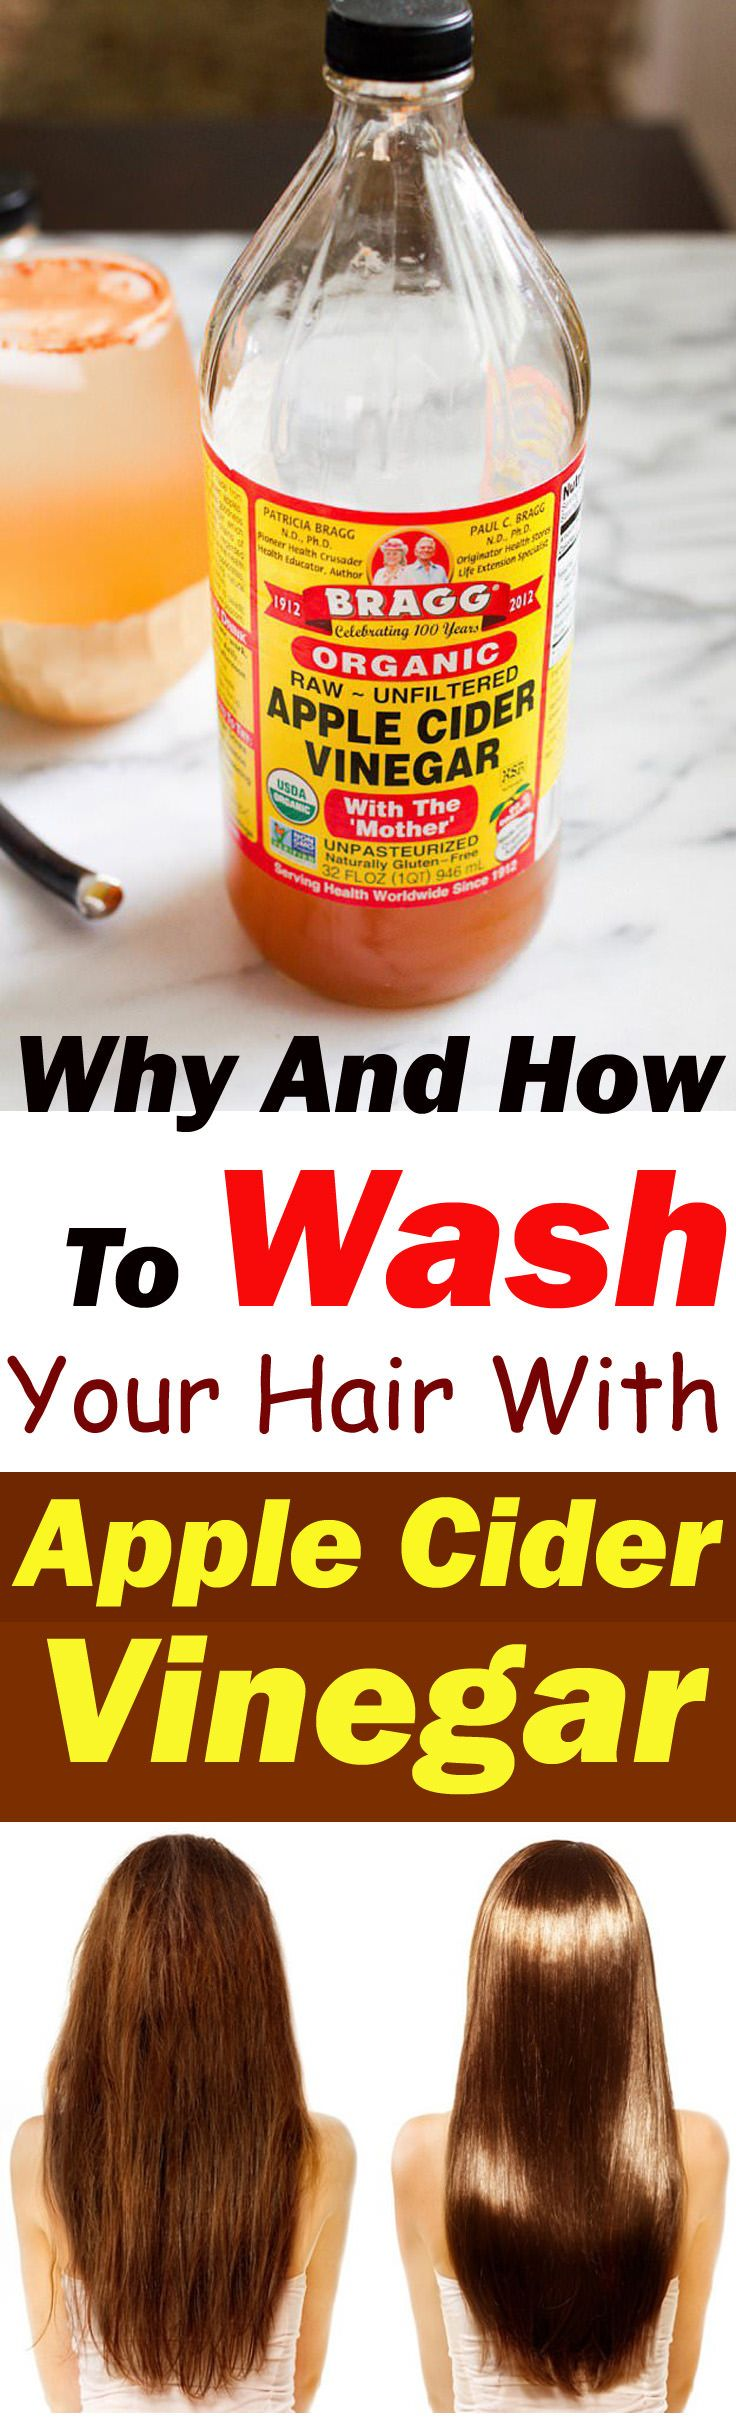 Why and How to Wash your Hair with Apple Cider Vinegar